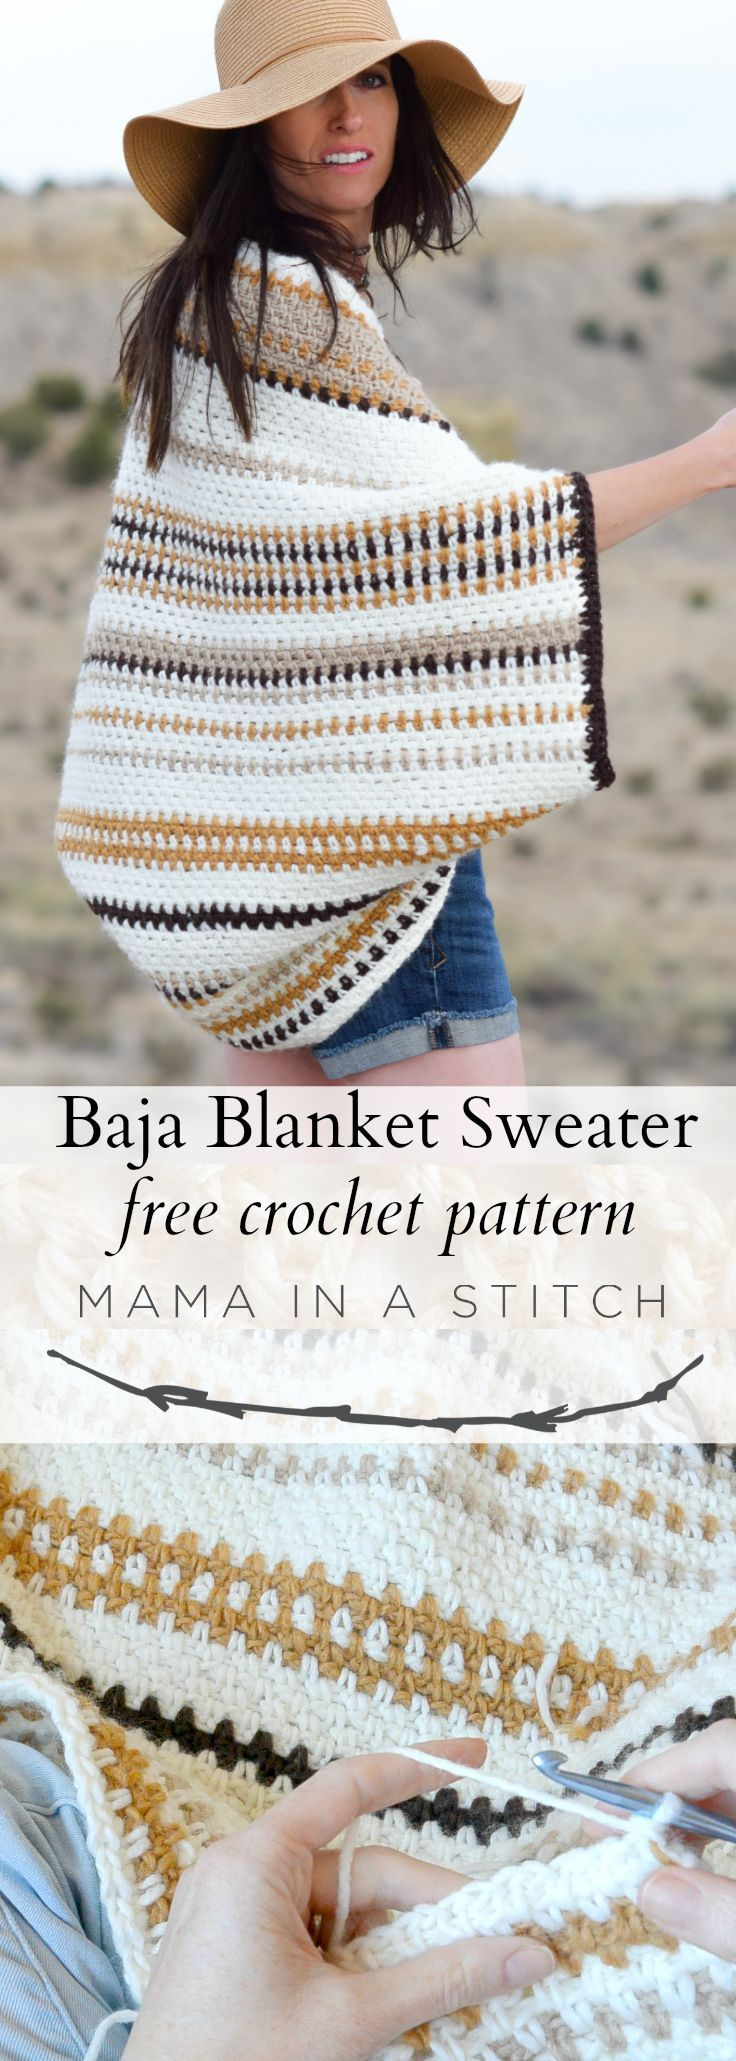 Baja Blanket Sweater Crochet Pattern via @MamaInAStitch This easy, free crochet pattern is so simple and beautiful. There's a stitch tutorial and pattern included. #diy #crafts